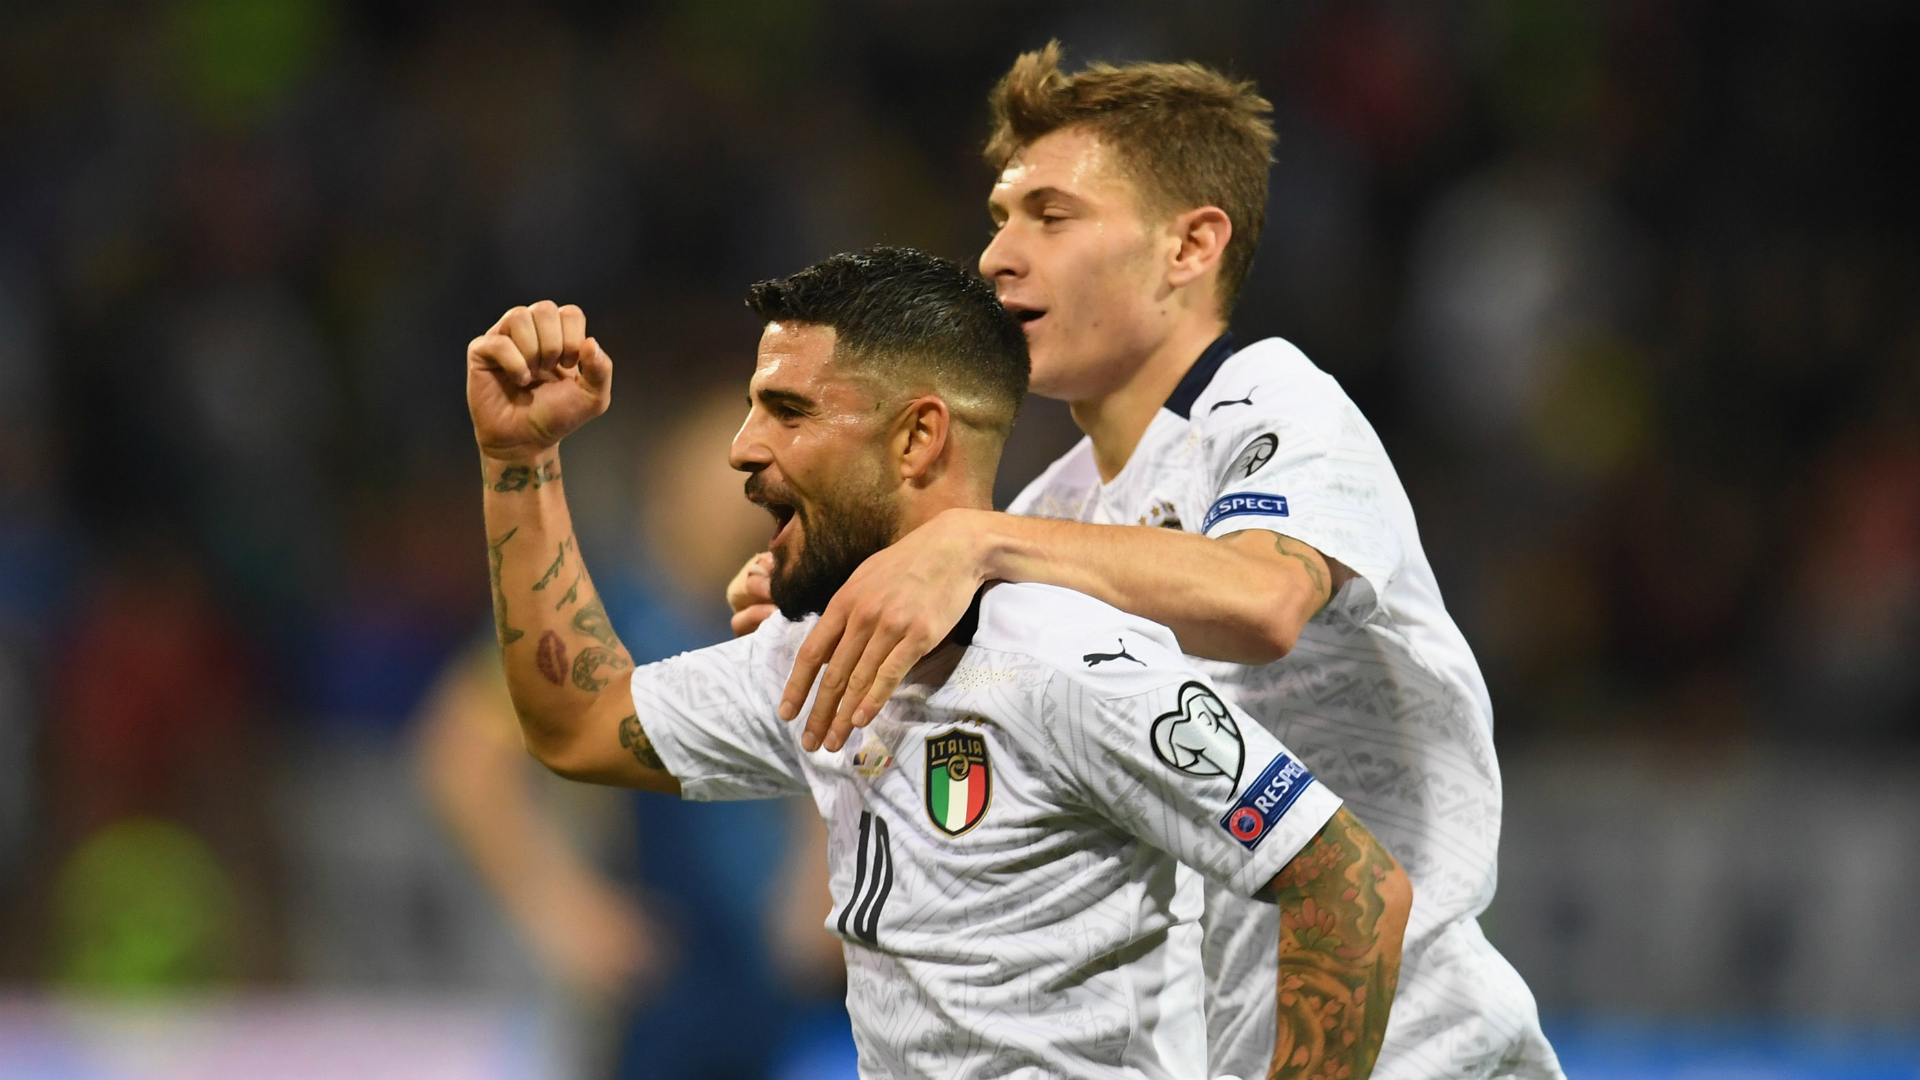 Bosnia-Herzegovina 0-3 Italy: Mancini's men coast to record-breaking 10th straight win